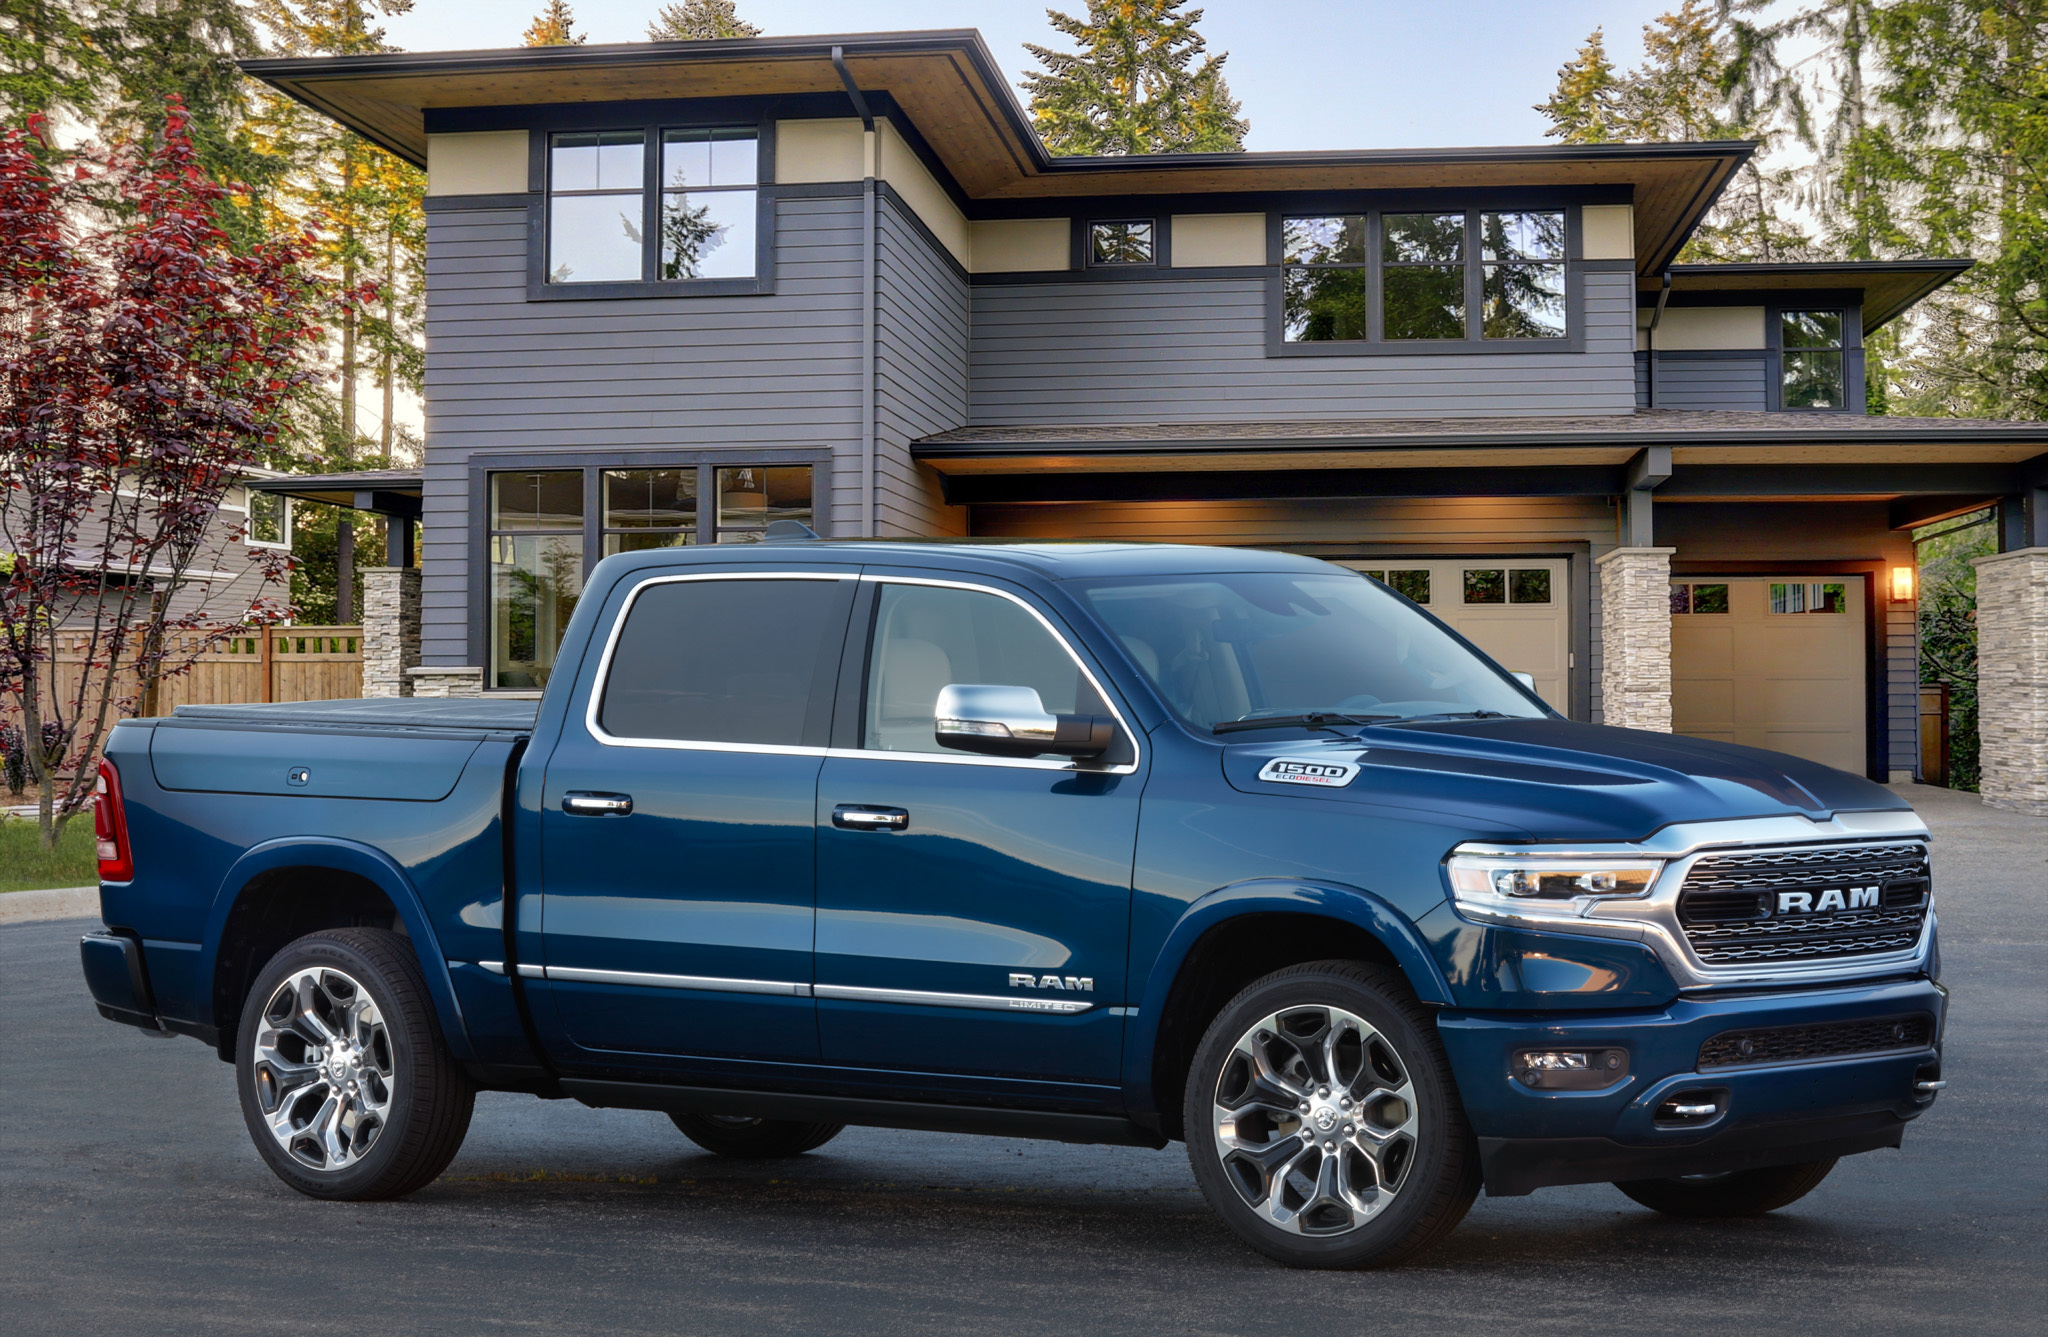 2022 Ram Limited 10th Anniversary Edition: Celebrating A Decade of Luxury